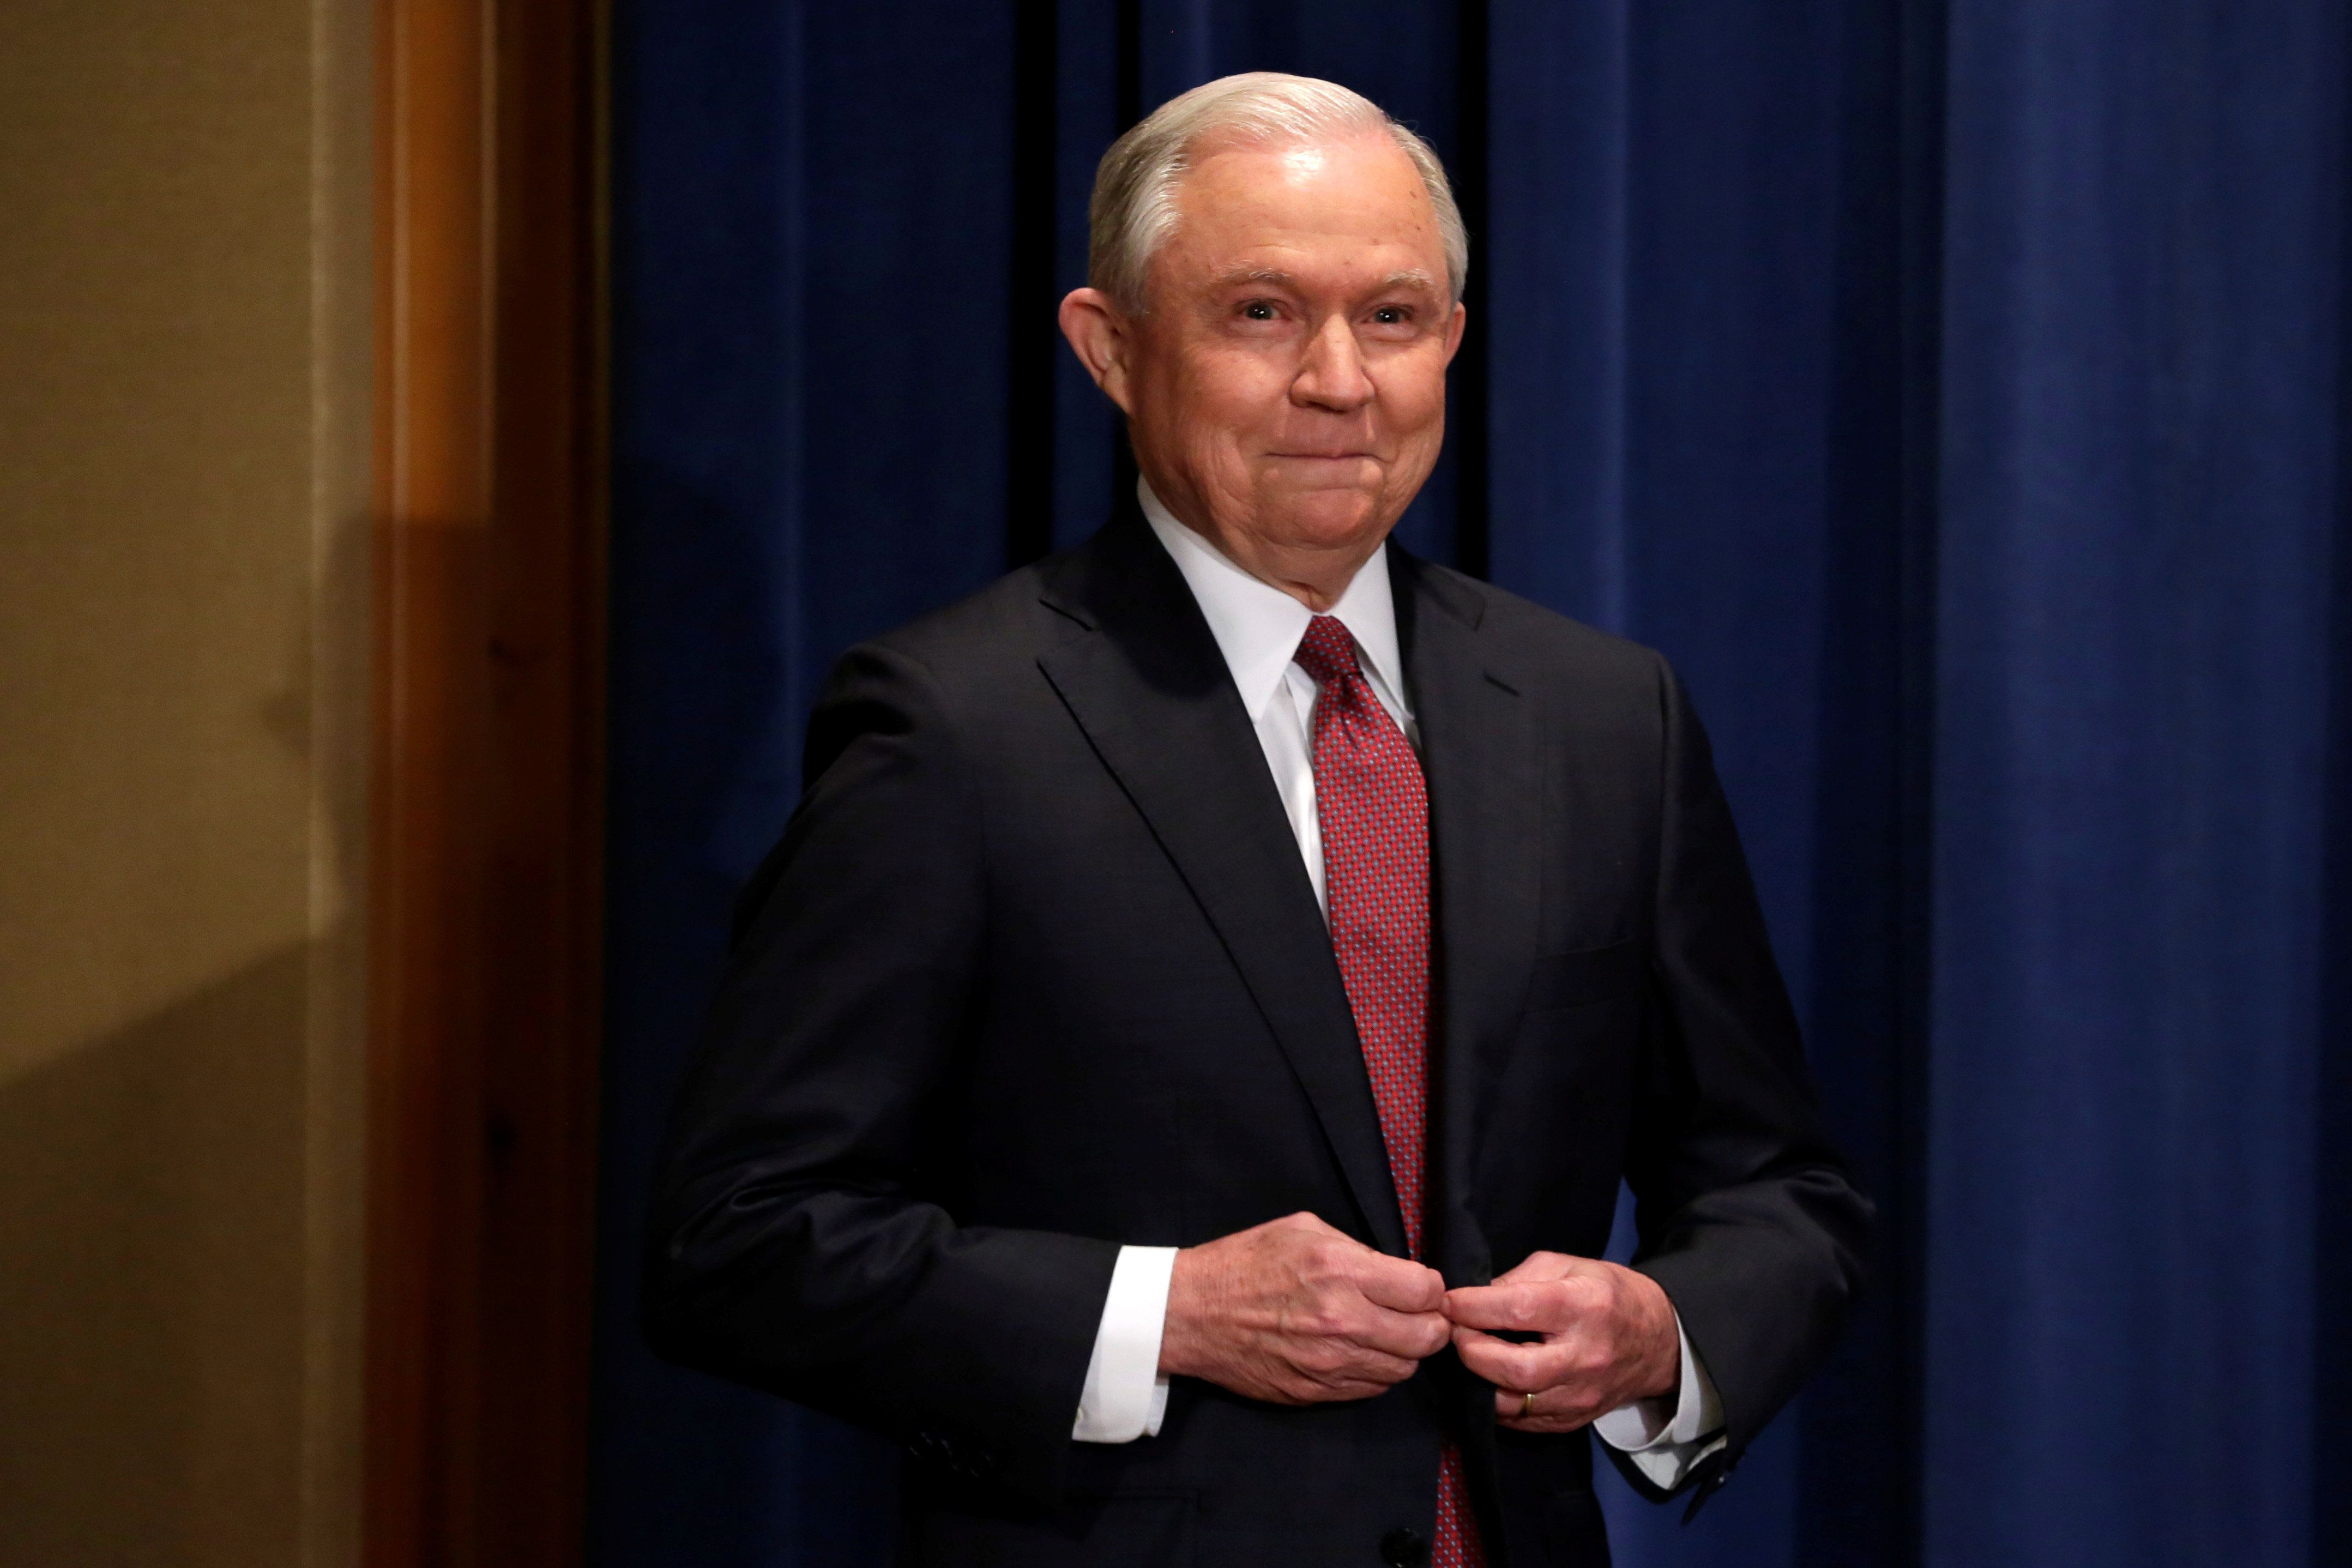 Attorney General Jeff Sessions declaredthe end of DACA at a news conference on Sept. 5.